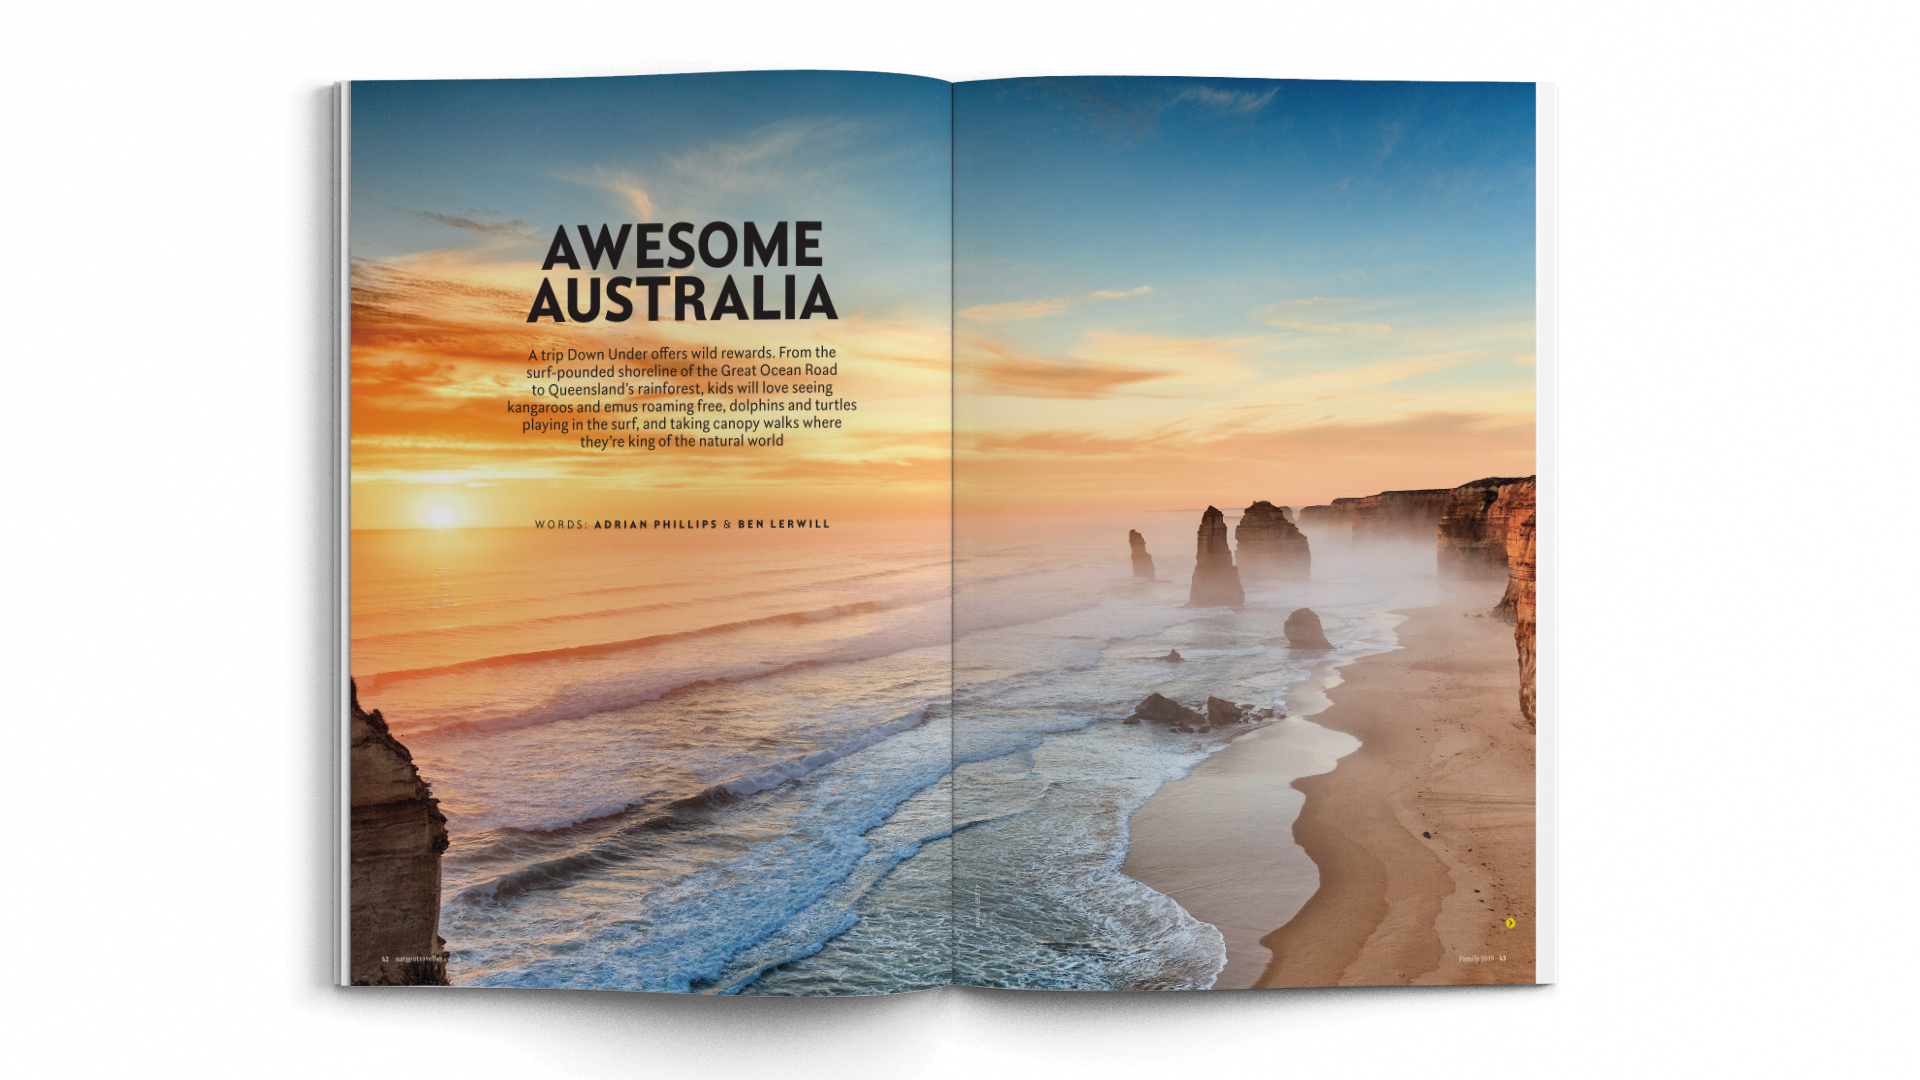 A4-Magazine-DPS-NGT-FAMILY-Aus